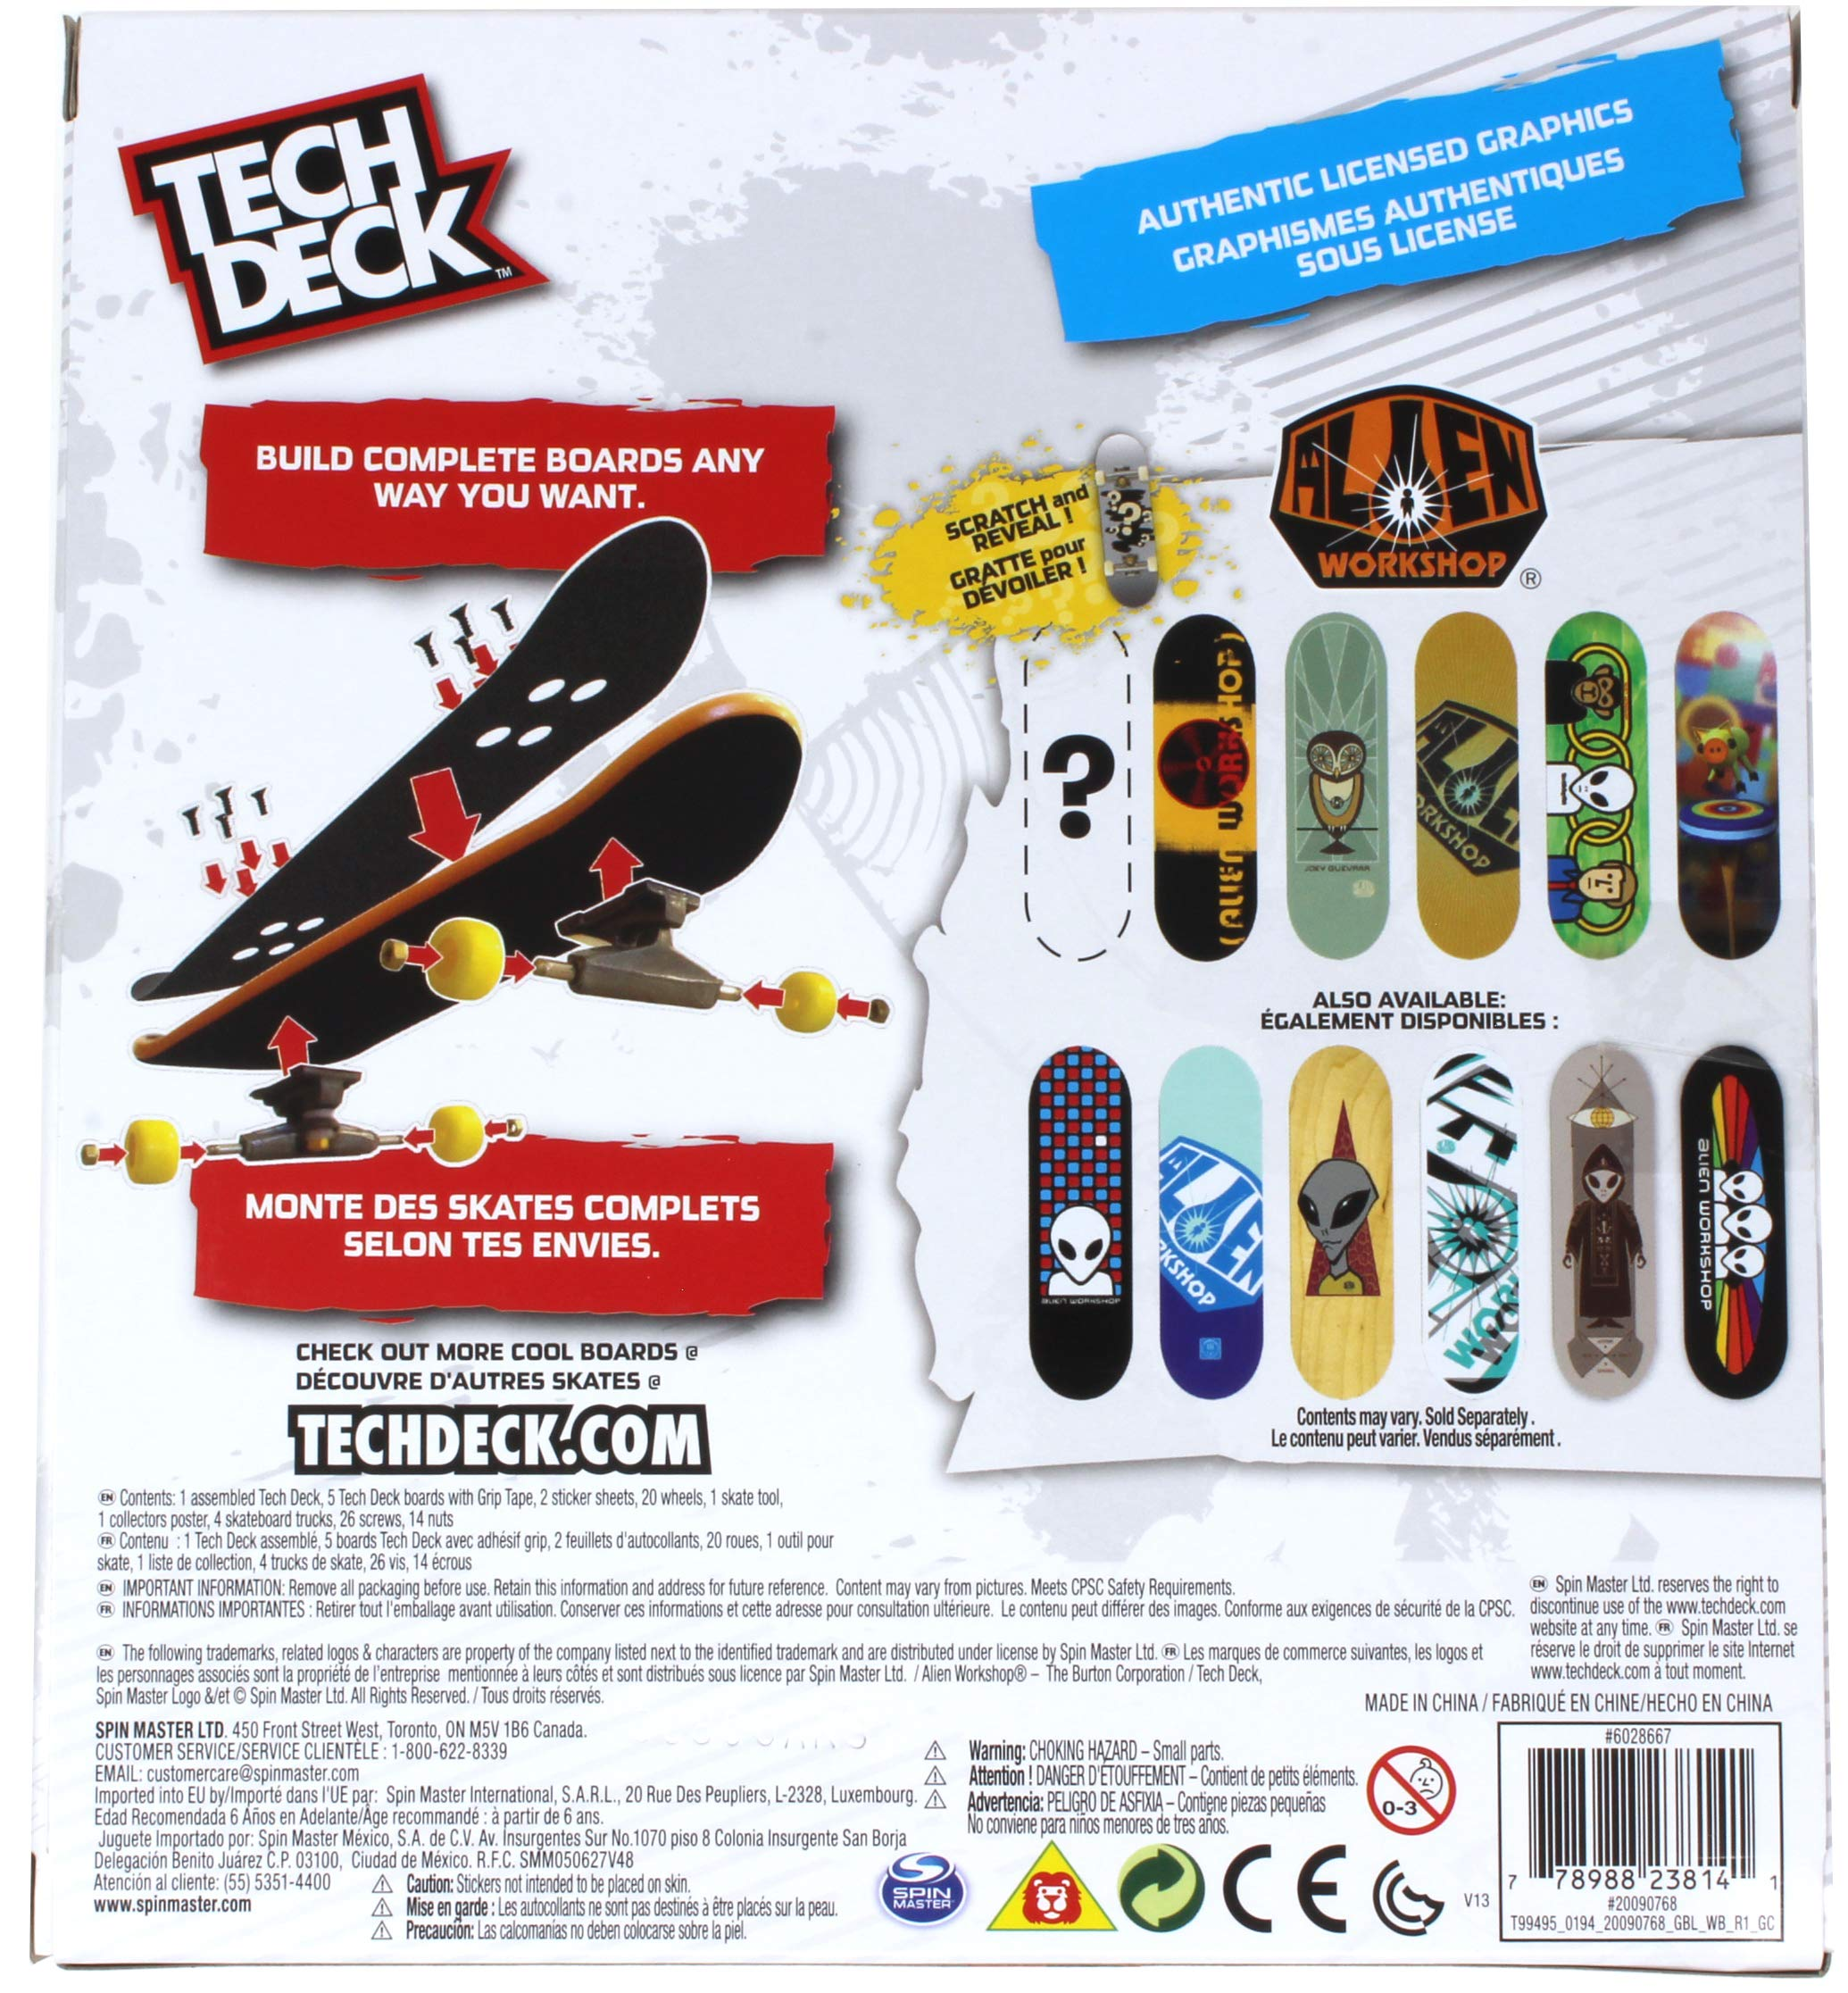 Tech Deck Alien Workshop Skateboards Sk8shop Bonus Pack with 6 Fingerboards - 20th Anniversary by Tech Deck (Image #2)